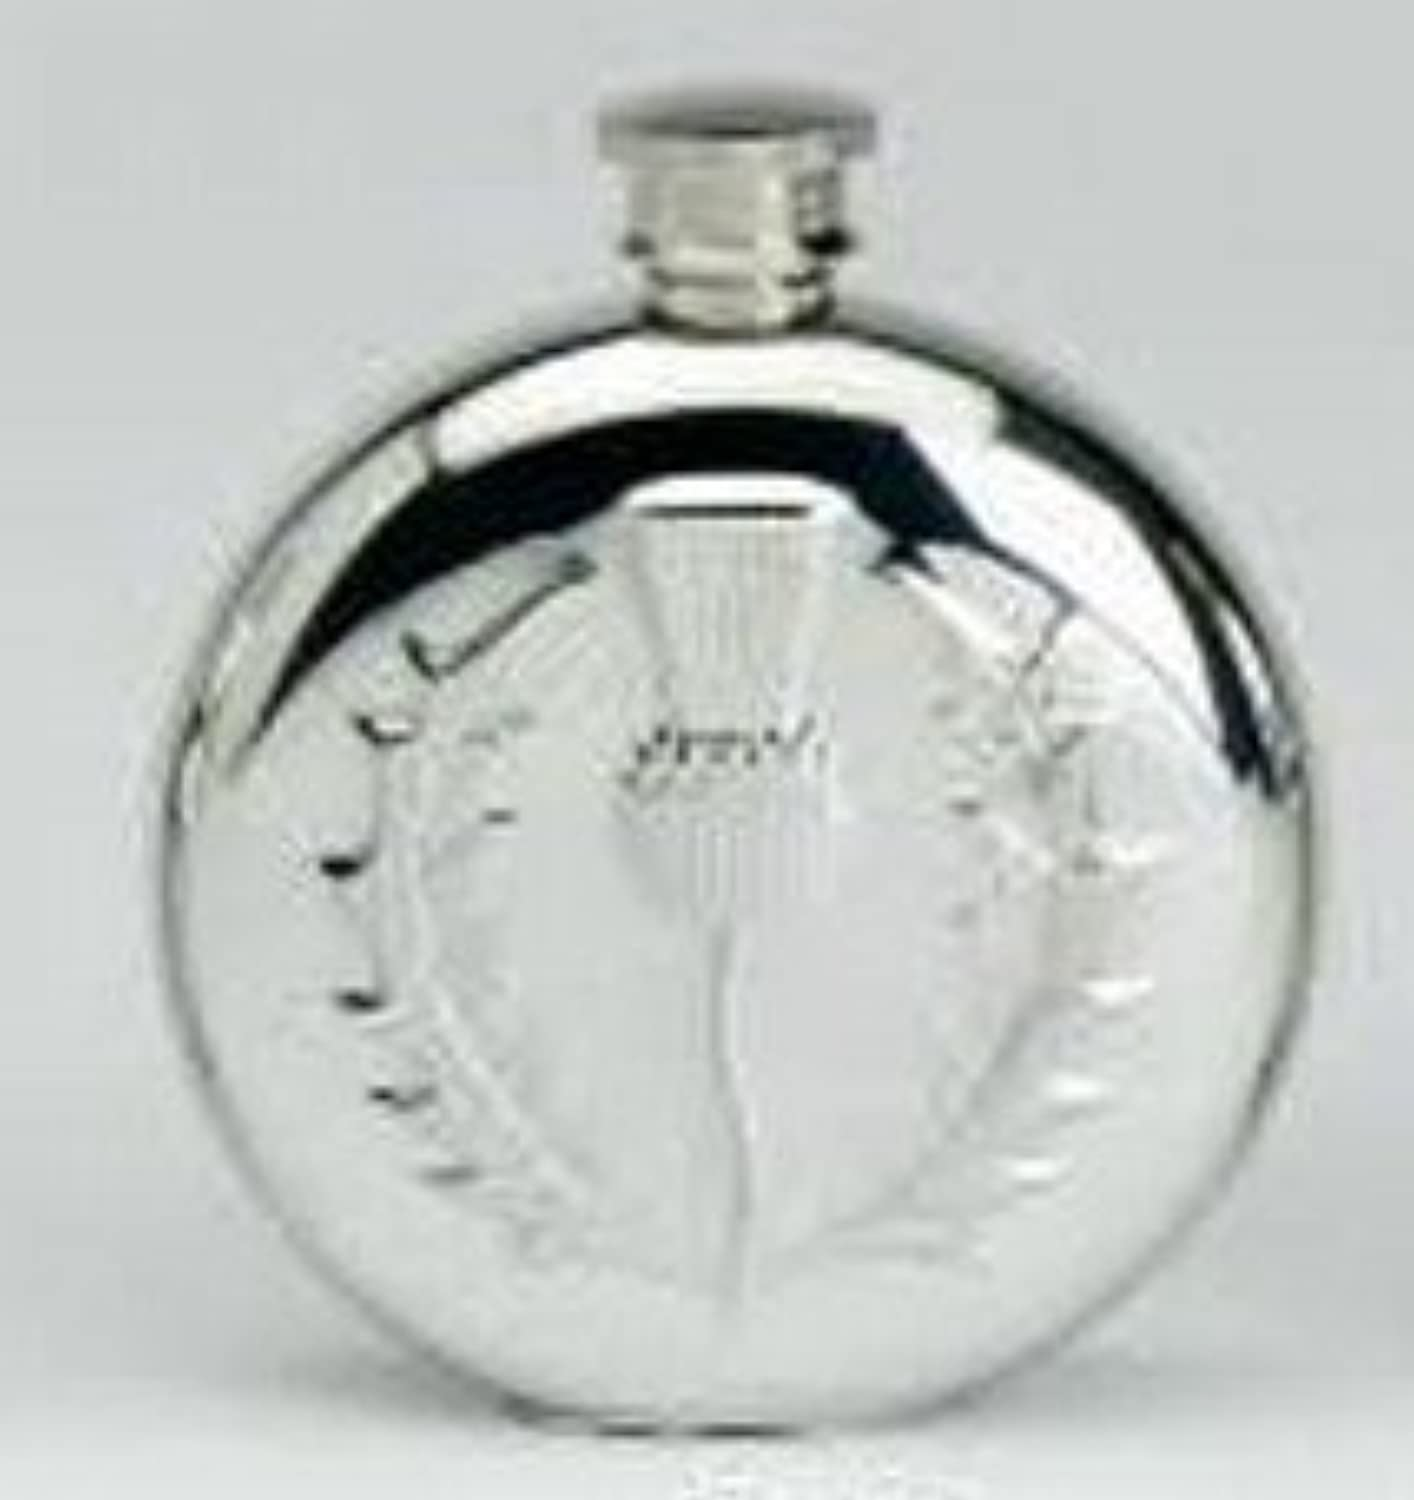 6oz Rd Flask Thistle made from fine English Pewter comes with a prideindetails box ref 31466